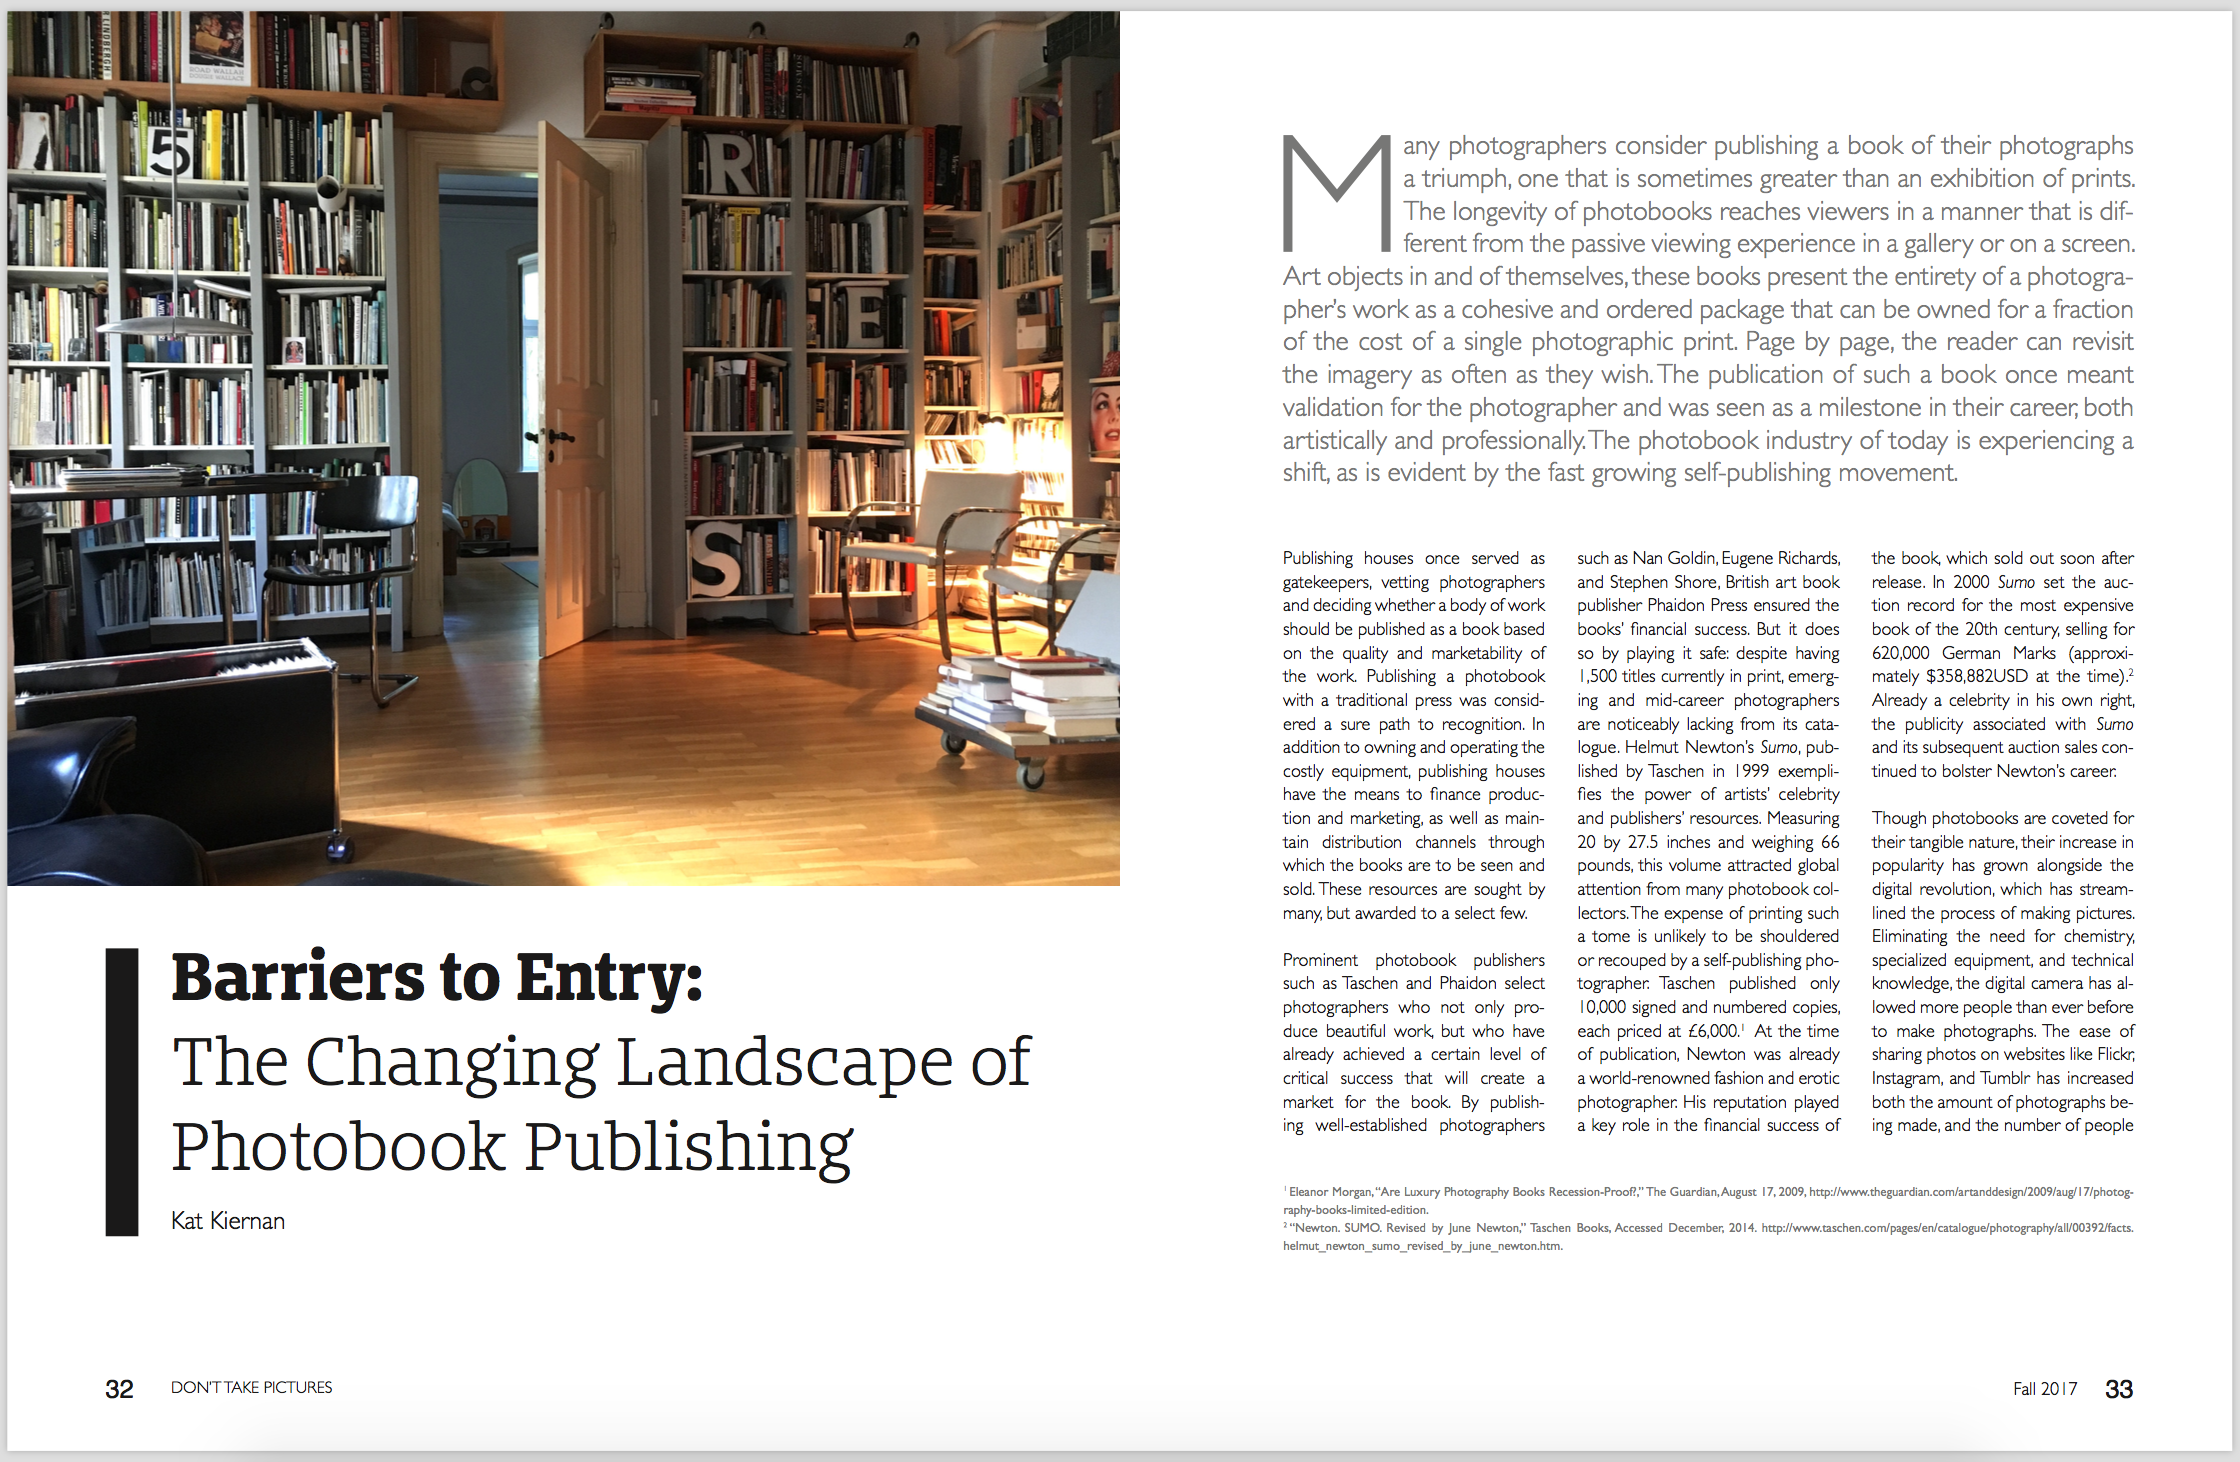 Barriers to Entry: The Changing Landscape of Photobook Publishing  Don't Take Pictures, Issue 8 (March 2017)